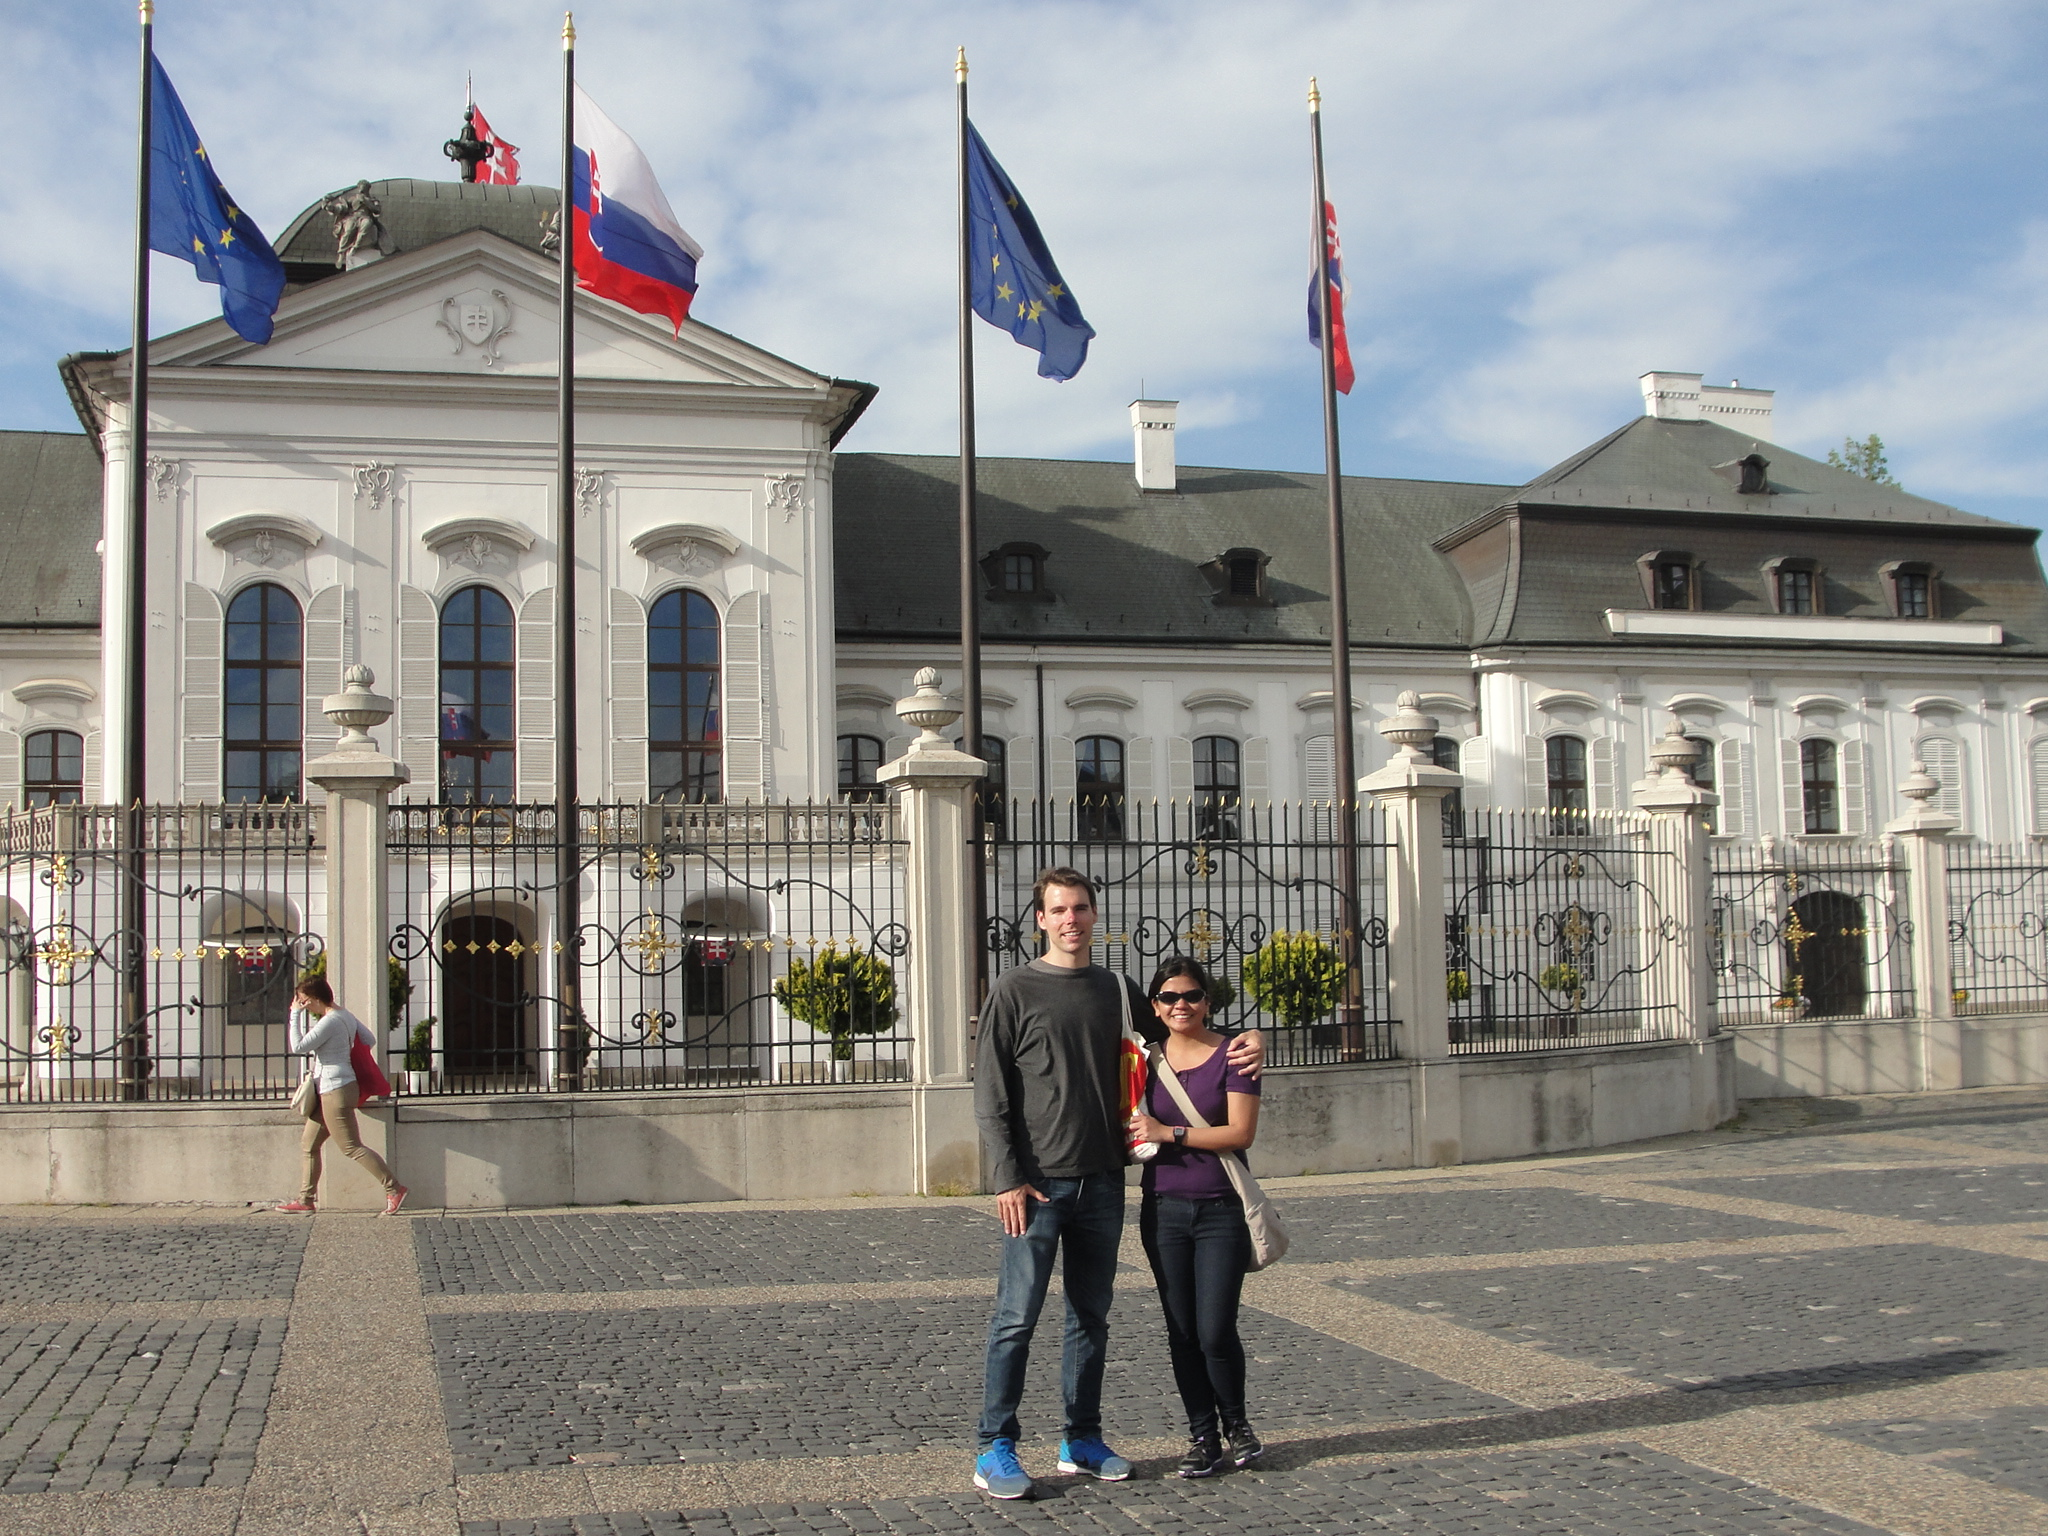 Our first day being engaged in Bratislava